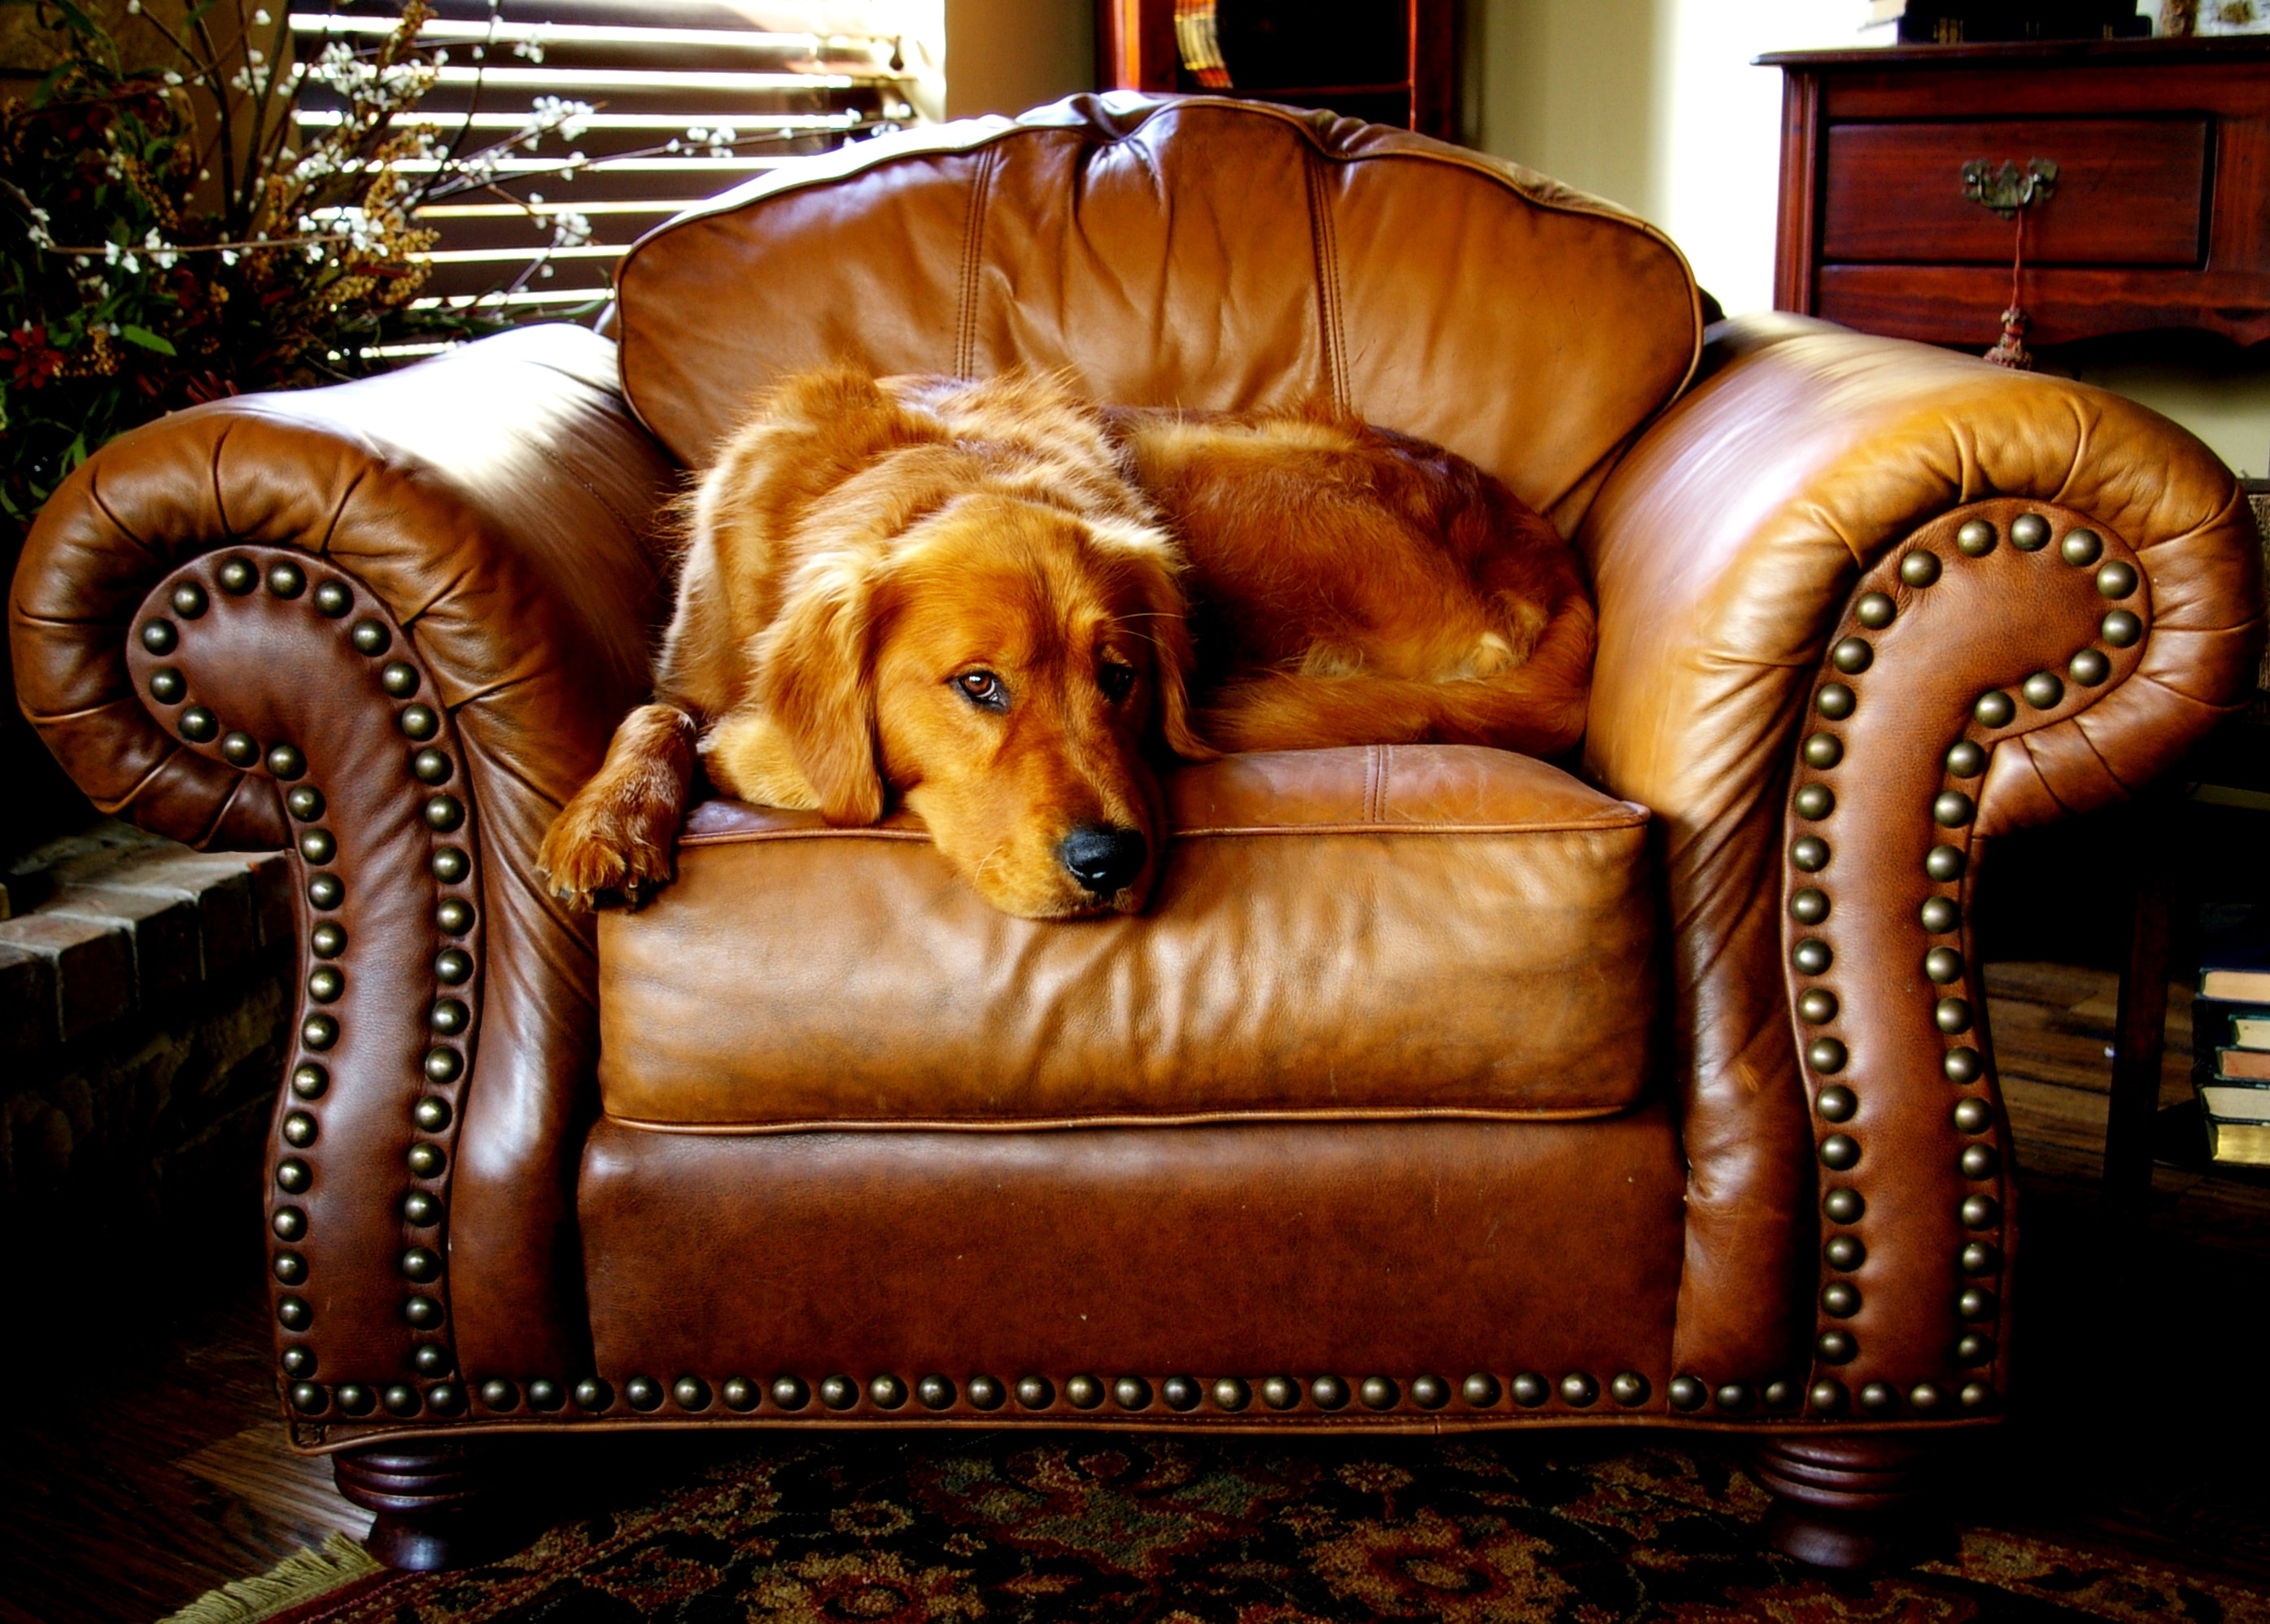 Aloha Chem-Dry leather cleaning service